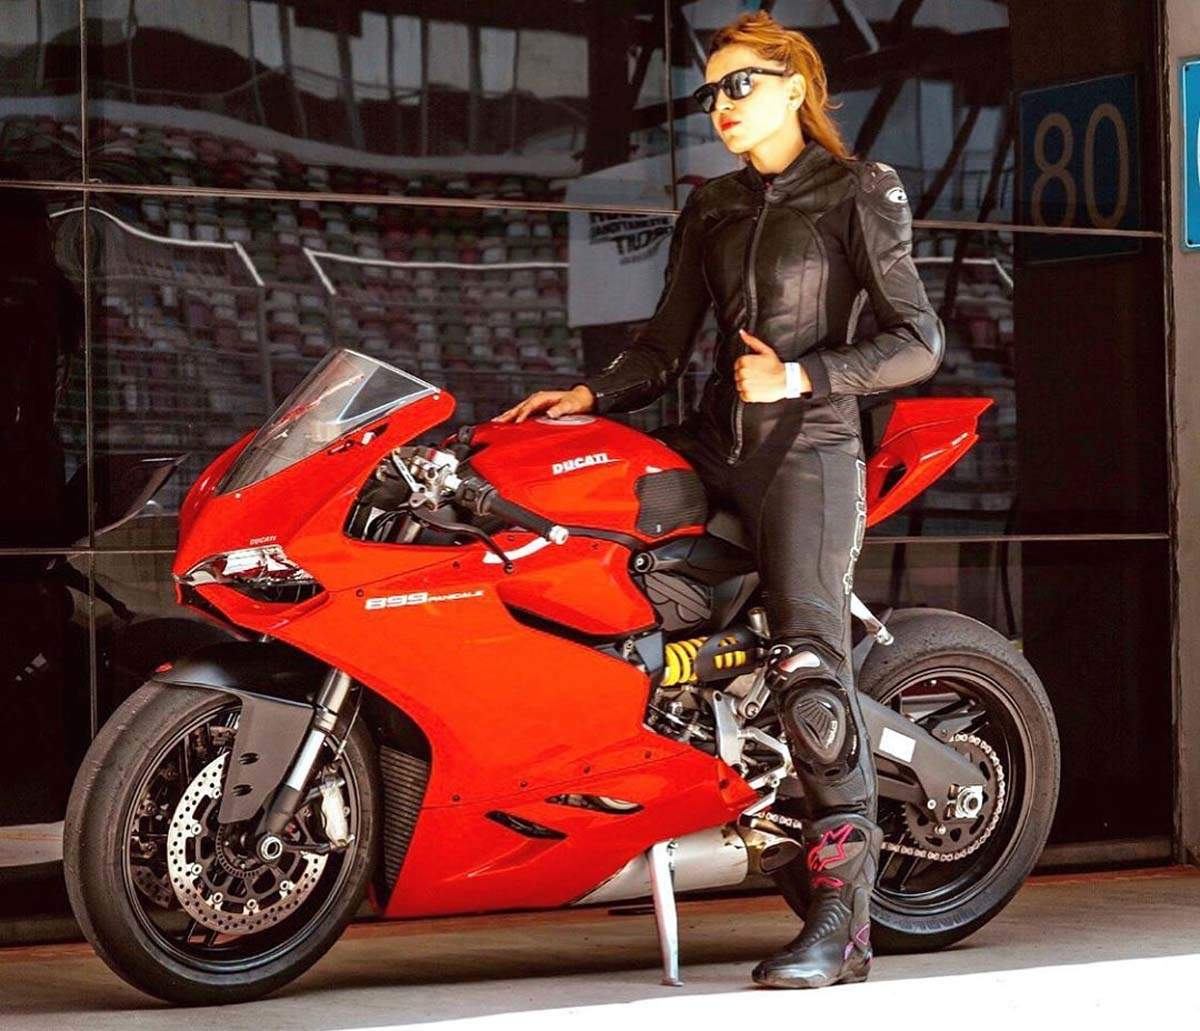 Glamorous pictures of Dr Neharika Yadav, the dentist who moonlights as a superbiker